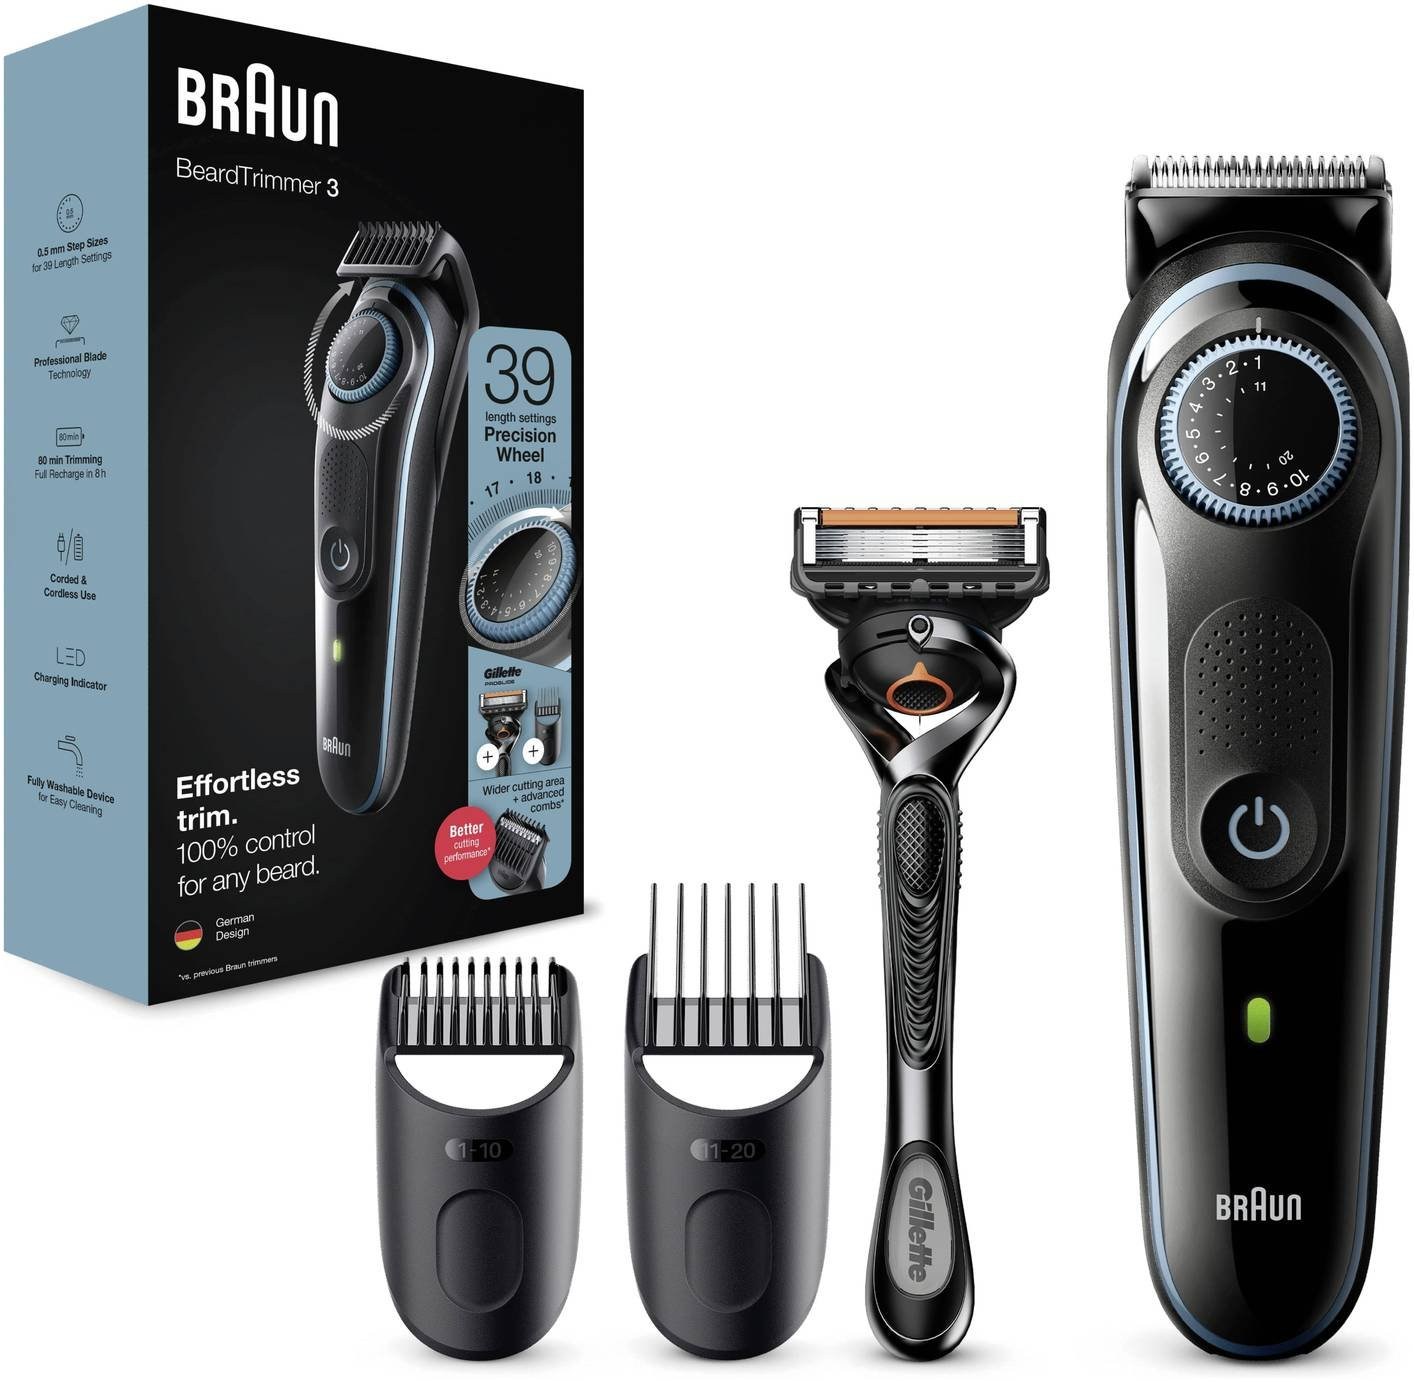 Braun Beard Trimmer with Gillette Razor BT3040